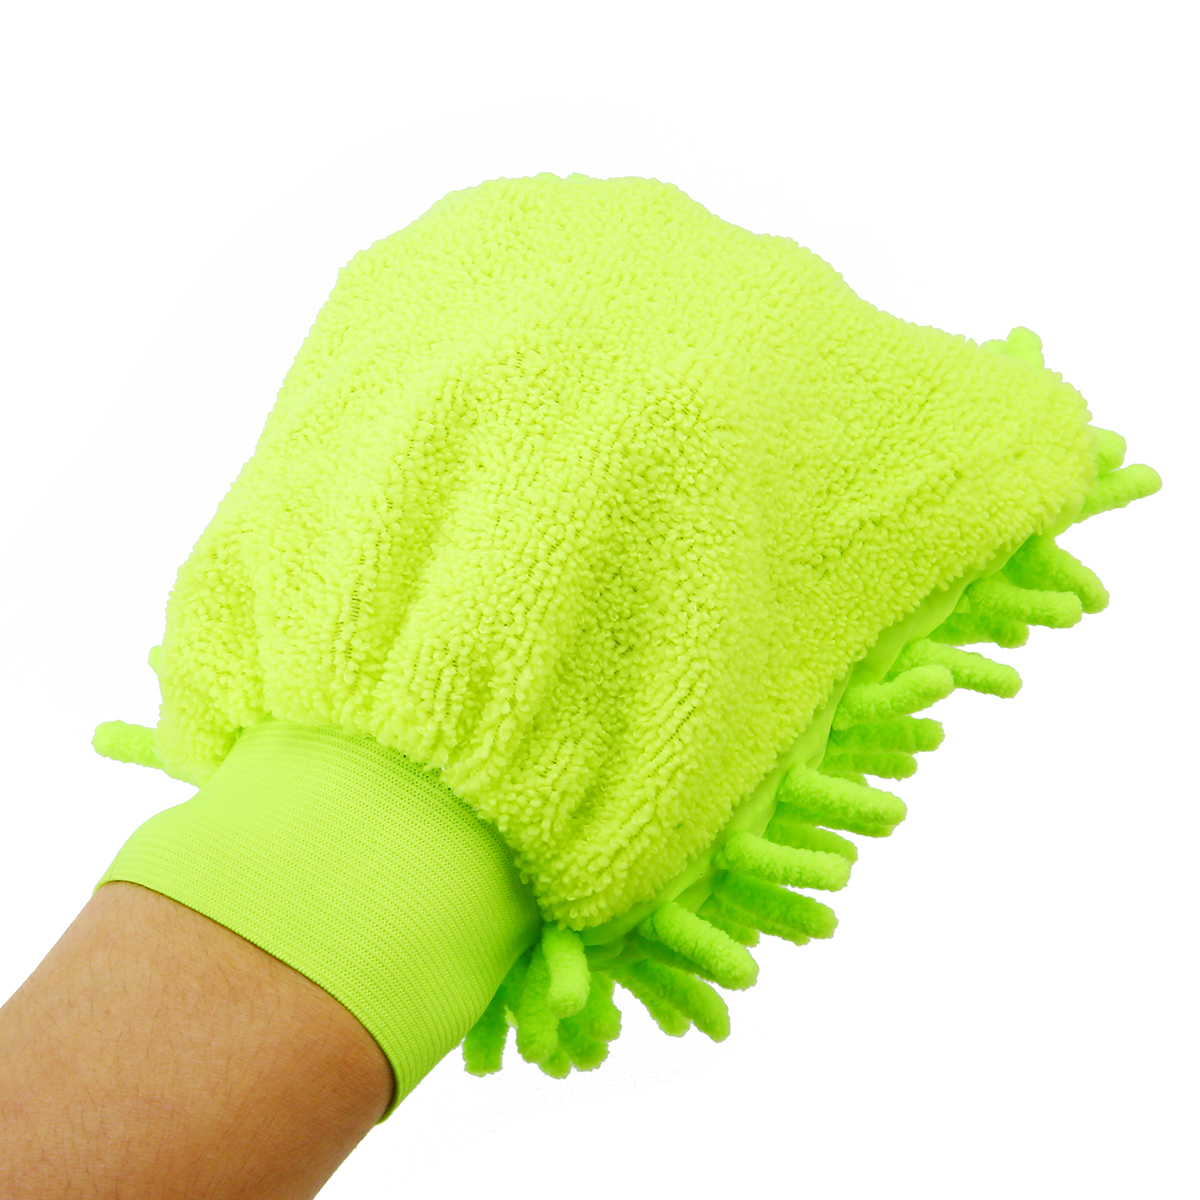 1pcs Microfiber Car Cleaning Clay Detailing Cleaning Glove Ultrafine Microfiber Household Auto Care Washing Cloth